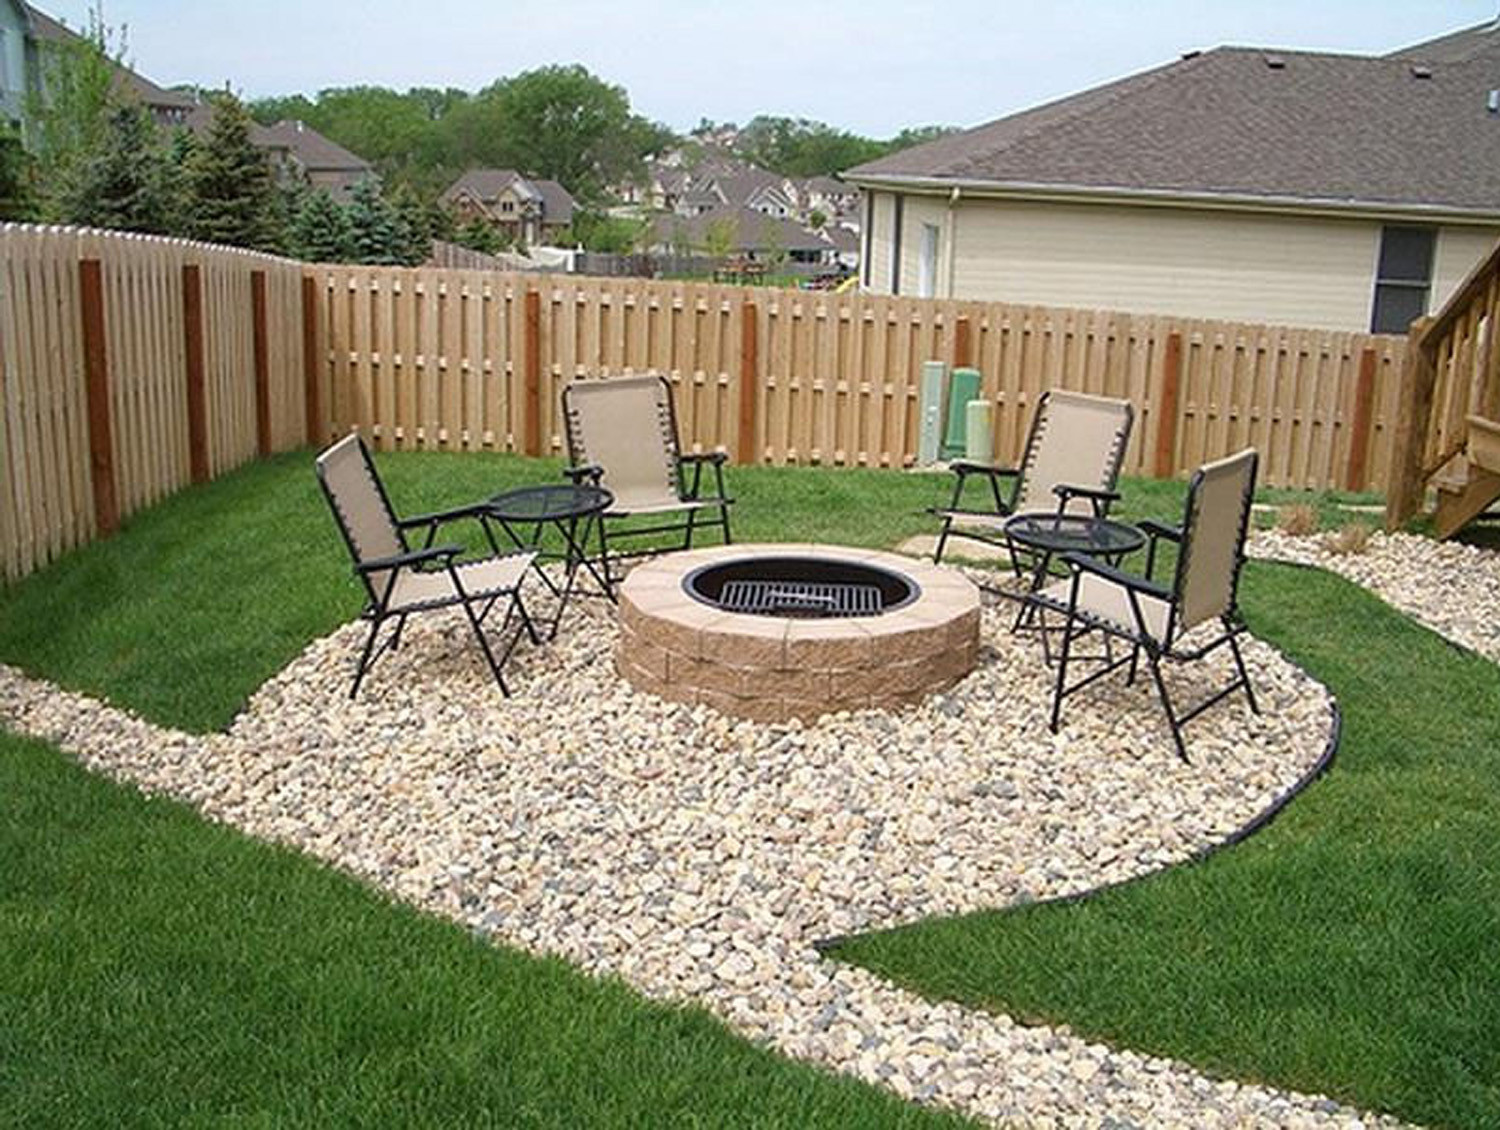 Best ideas about Diy Backyard Patio . Save or Pin Interesting 17 DIY Fire Pit and Patio Ideas to Try Now.